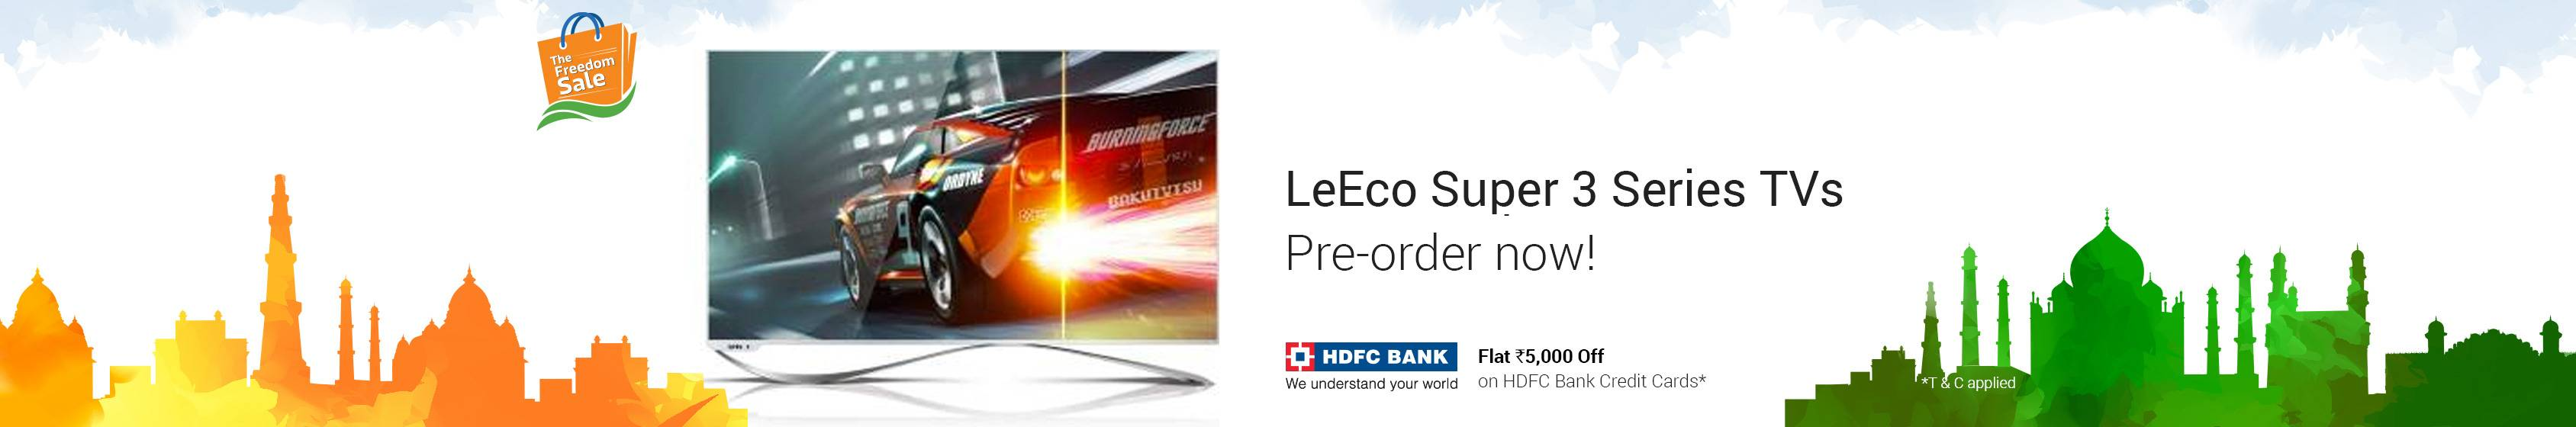 LeEco Super 3 Series TV HDFC card offers coupons promo codes cashback offers deals